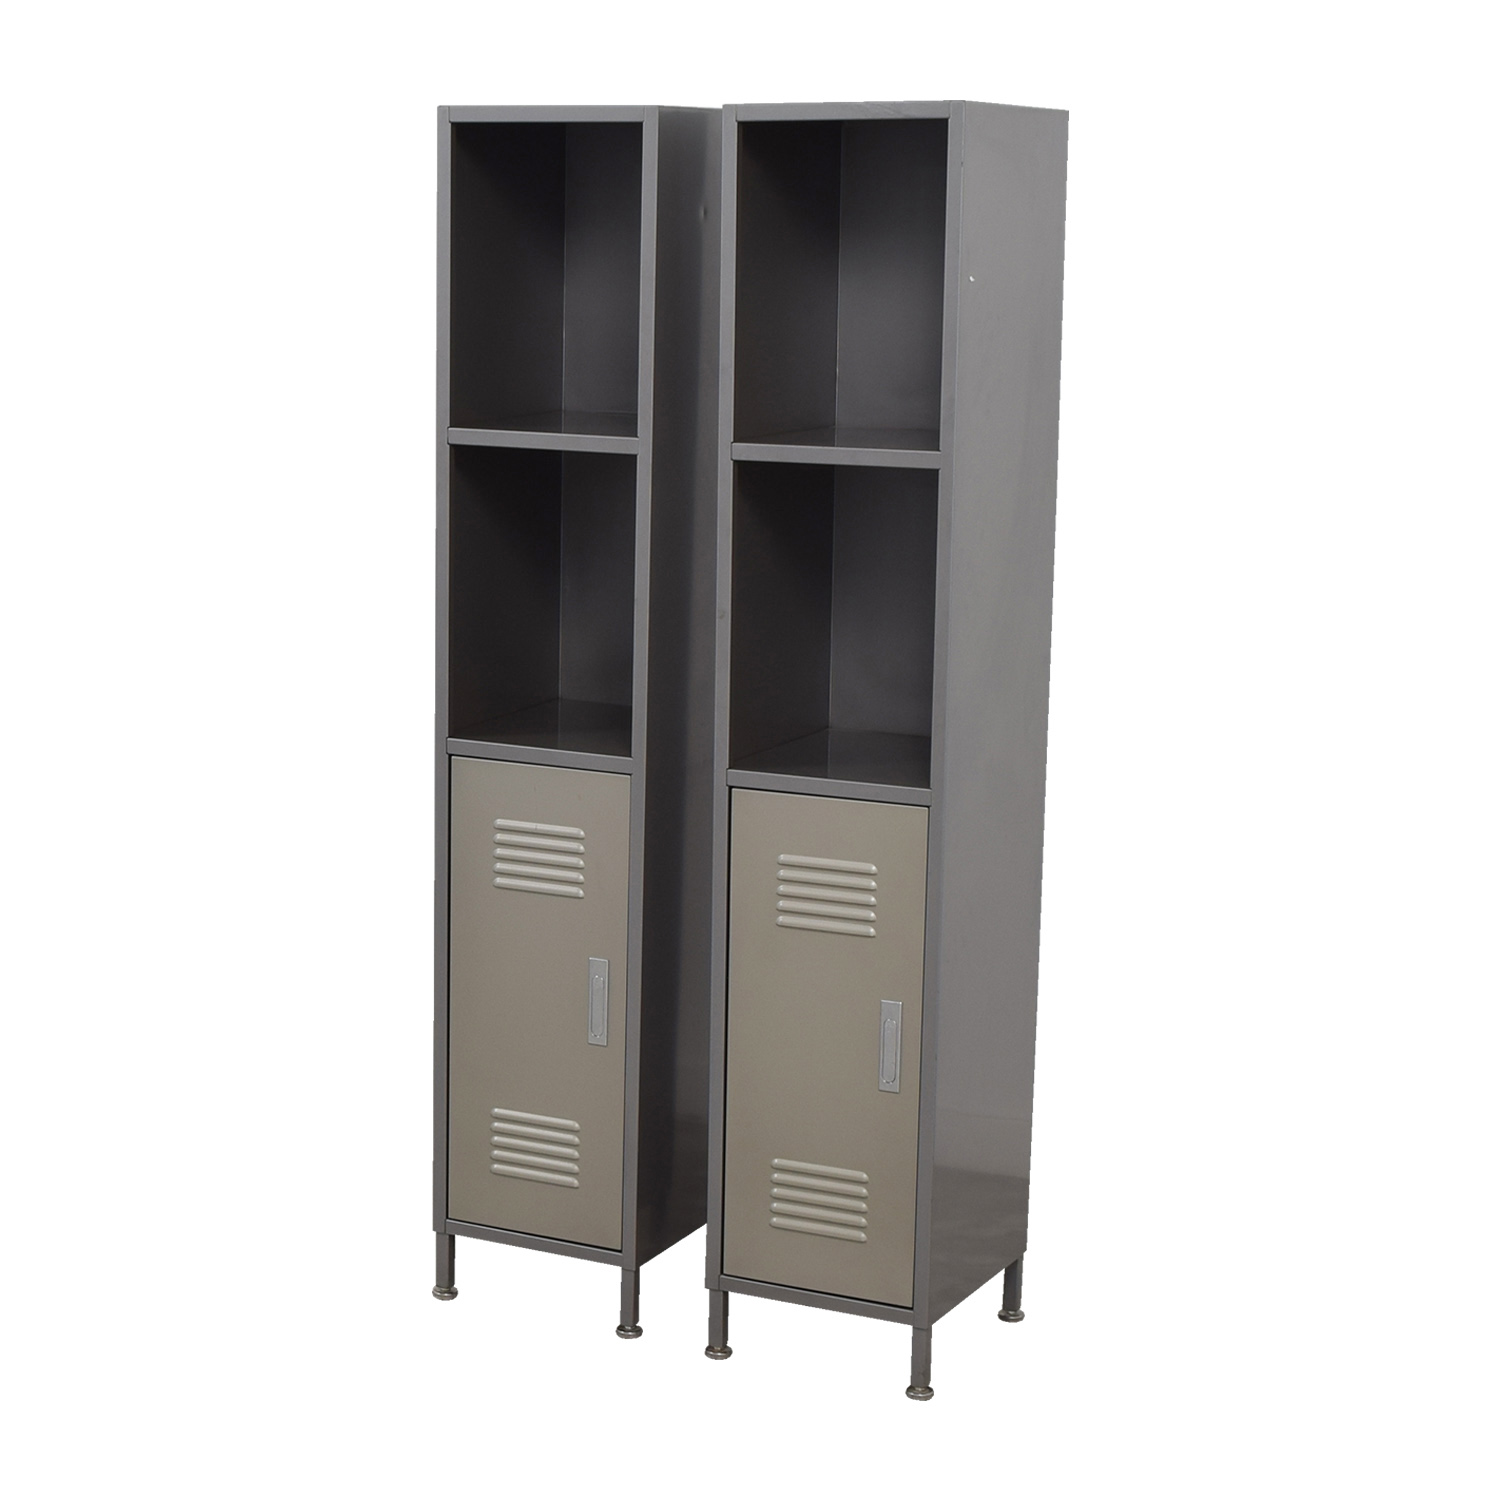 Groovy 90 Off Pbteen Pb Teen Grey Metal High Locker Cabinets Storage Home Interior And Landscaping Palasignezvosmurscom